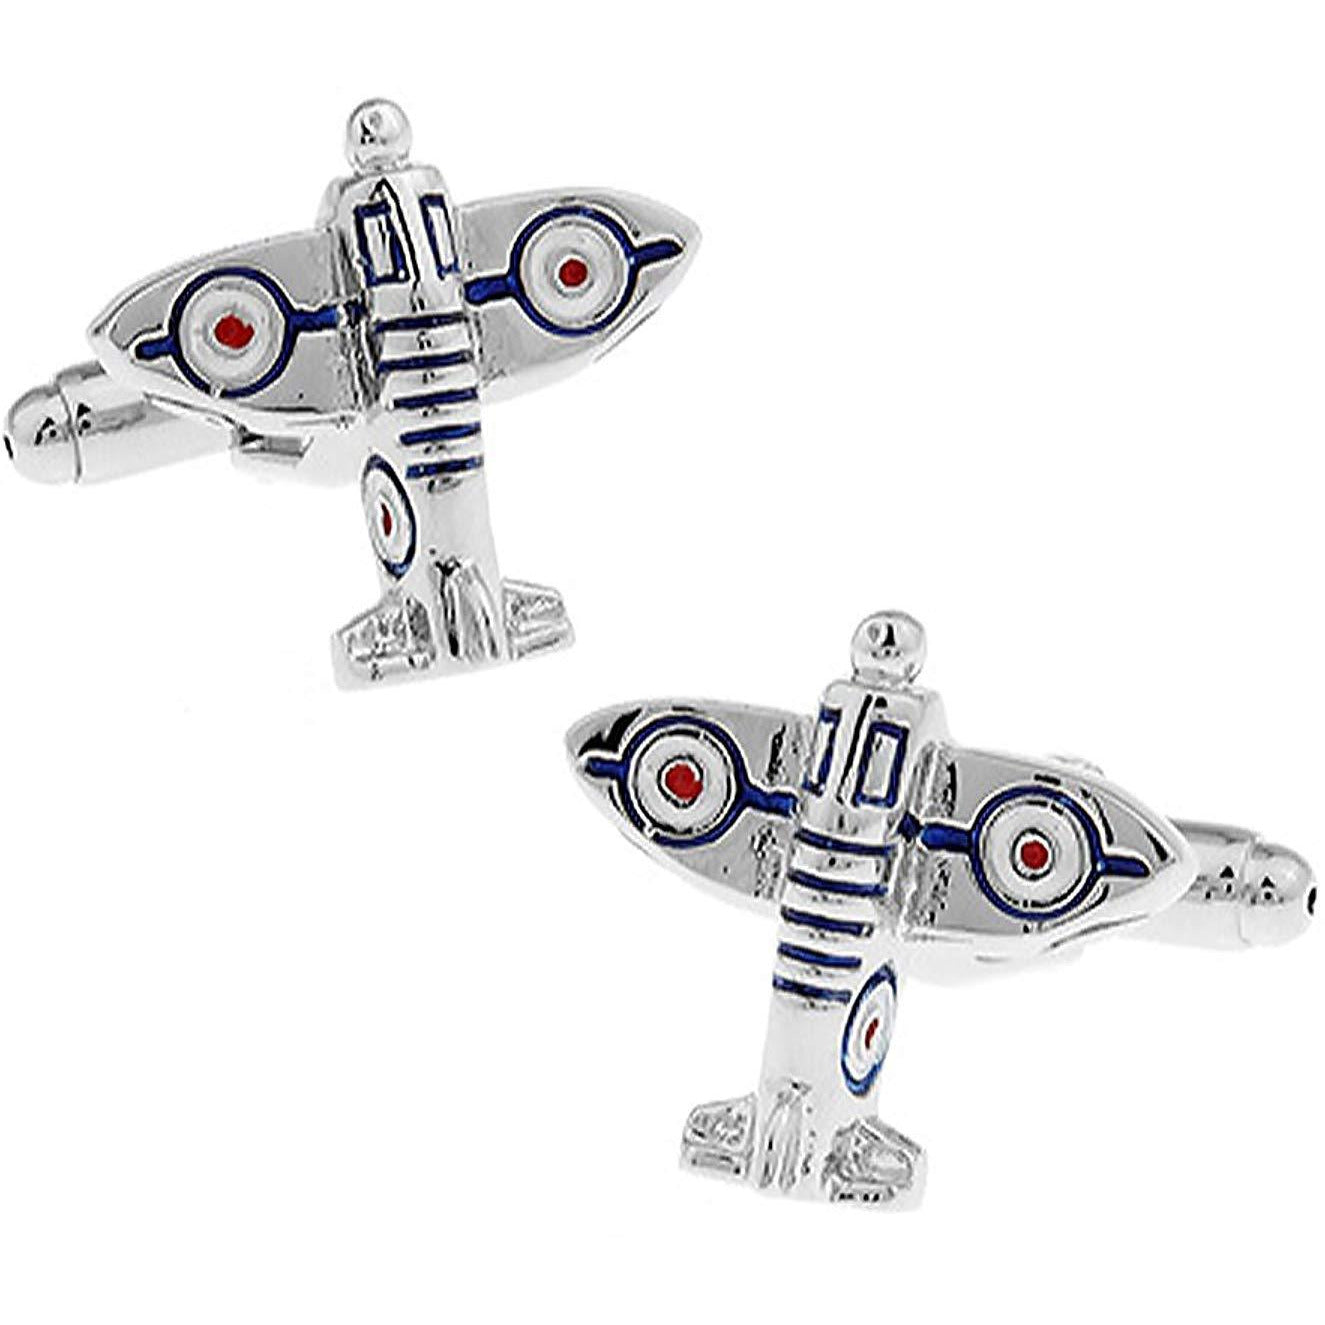 Spitfire Fighter Aeroplane Cufflinks